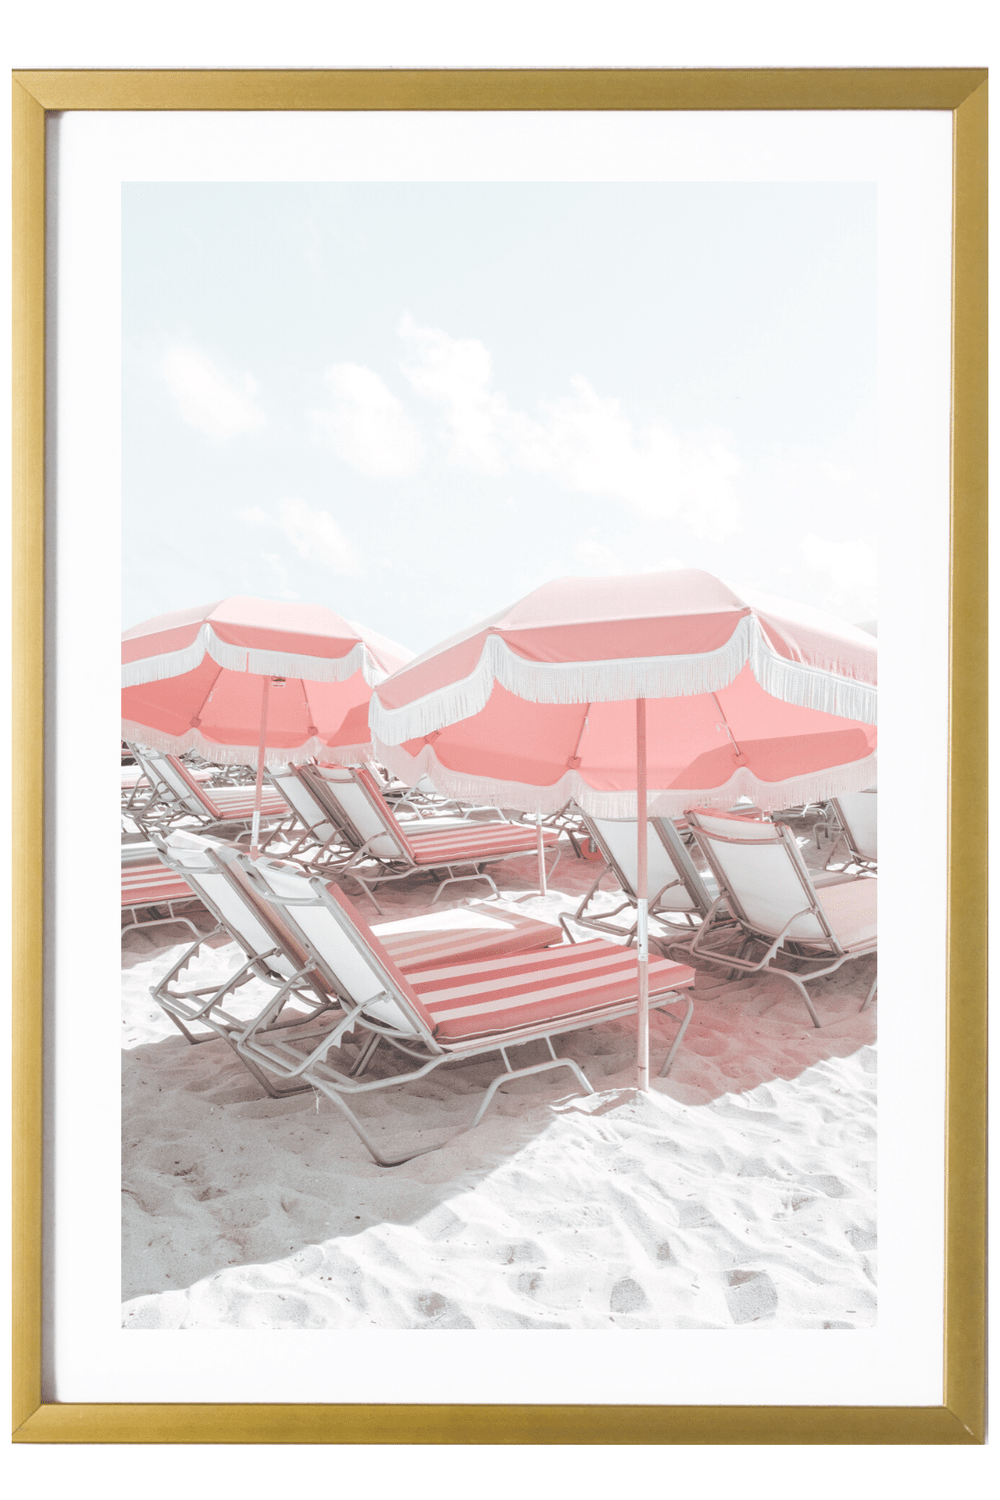 Miami Art Print - Pink Umbrellas